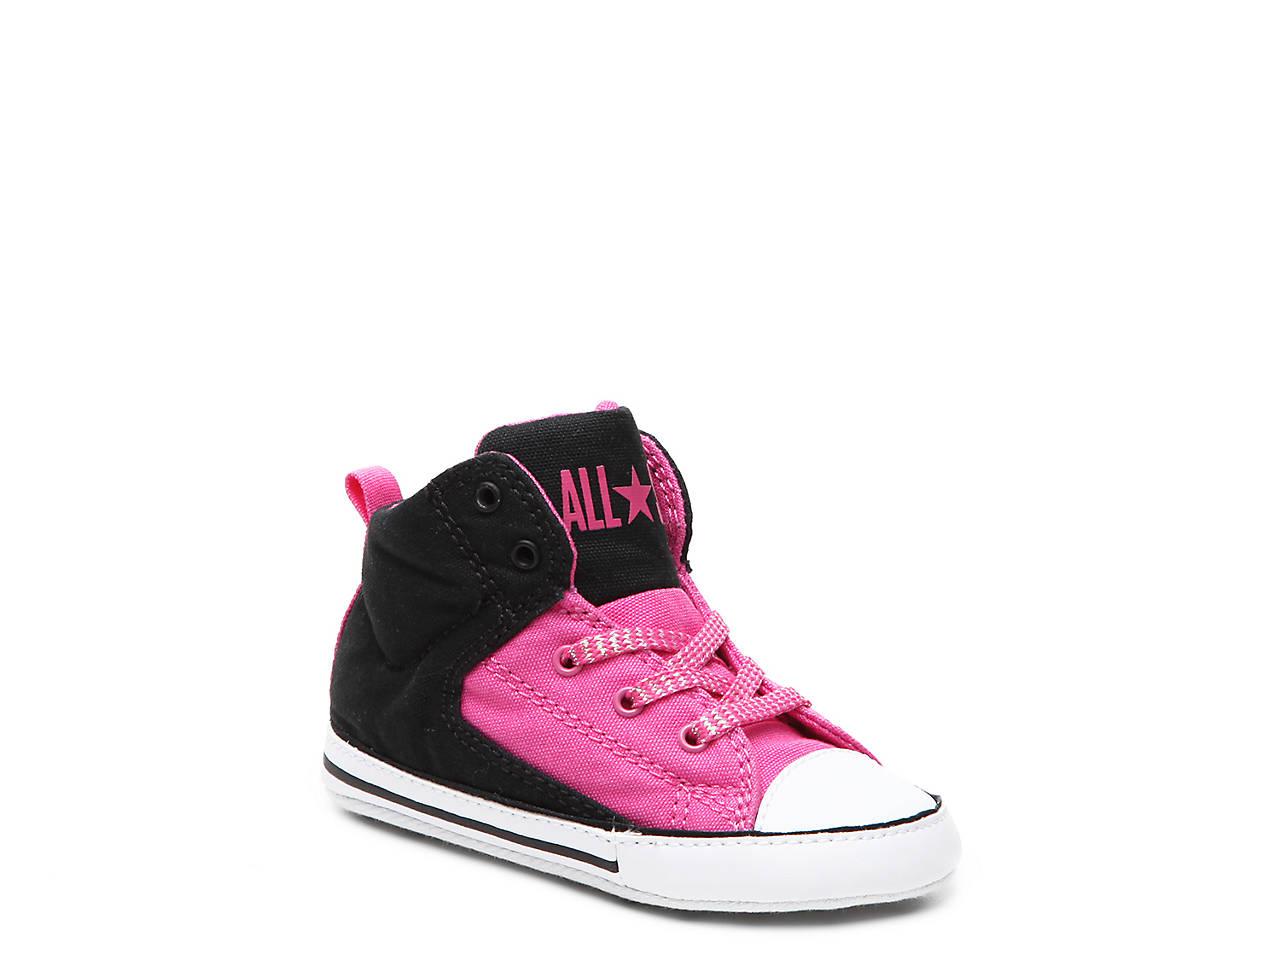 3adb51f52d9d Converse Chuck Taylor All Star First Star High Street Infant Crib ...